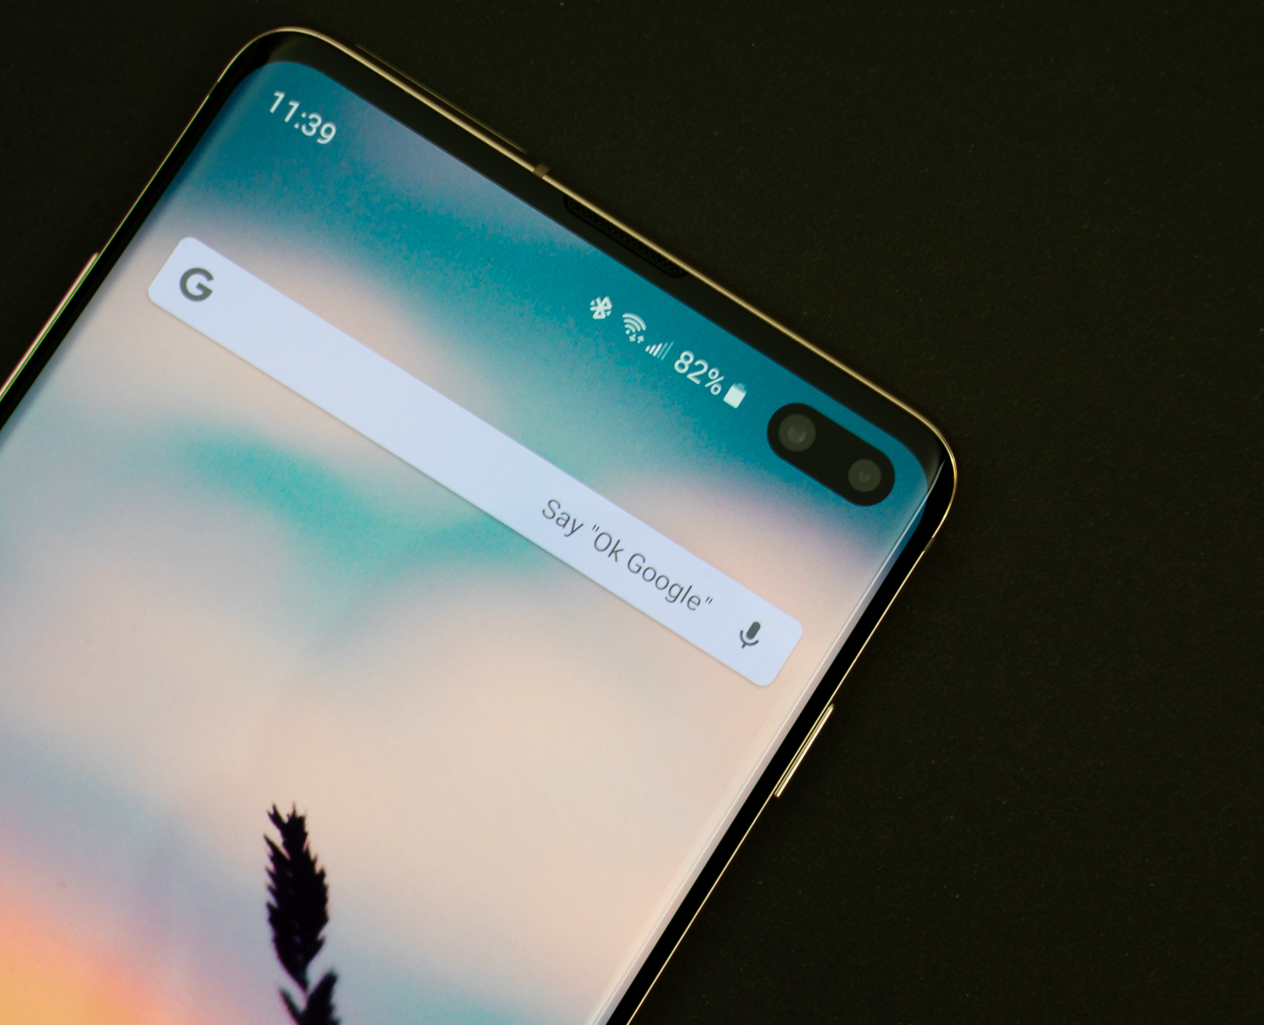 Samsung Galaxy S10+ review: the best big phone in 2019 so